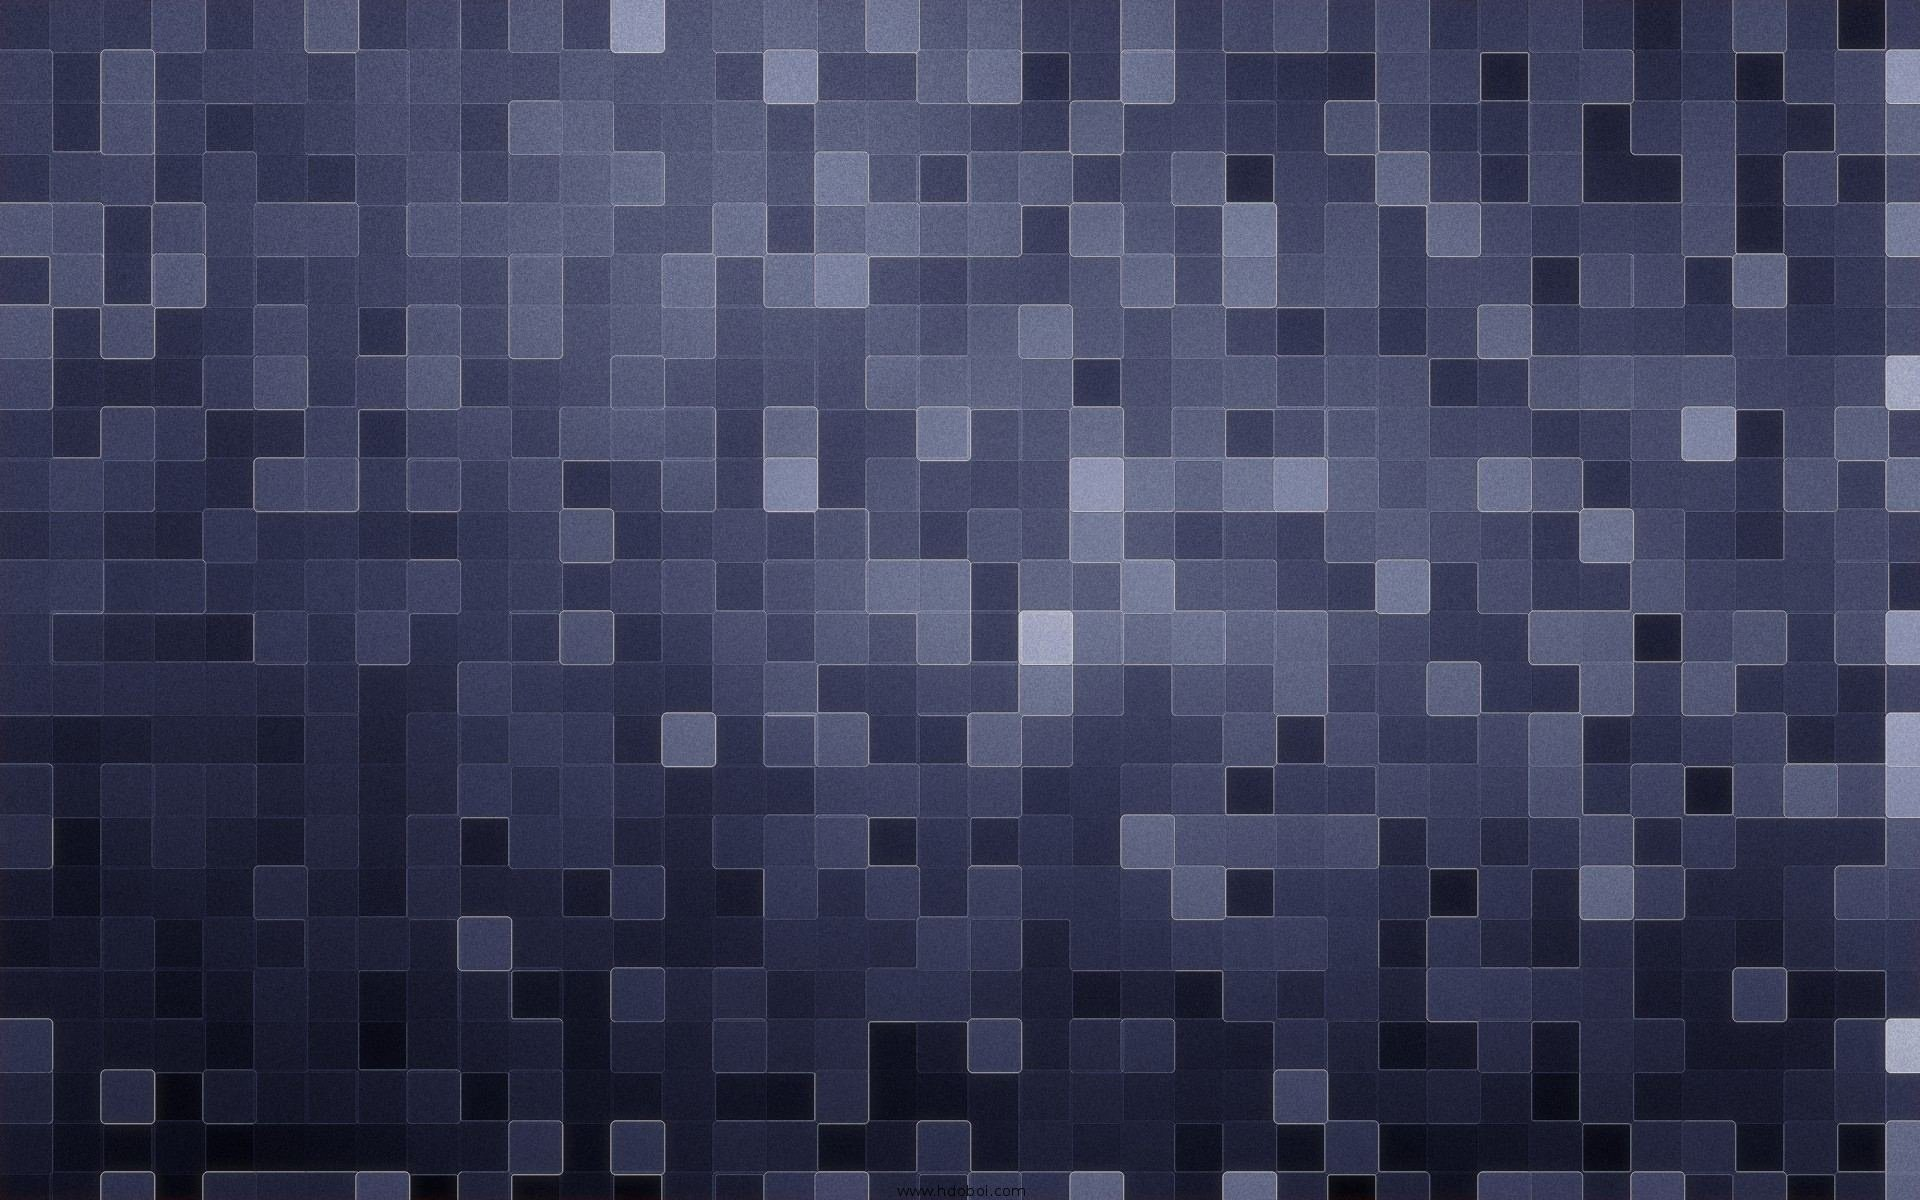 7 Mosaic HD Wallpapers | Background Images - Wallpaper Abyss